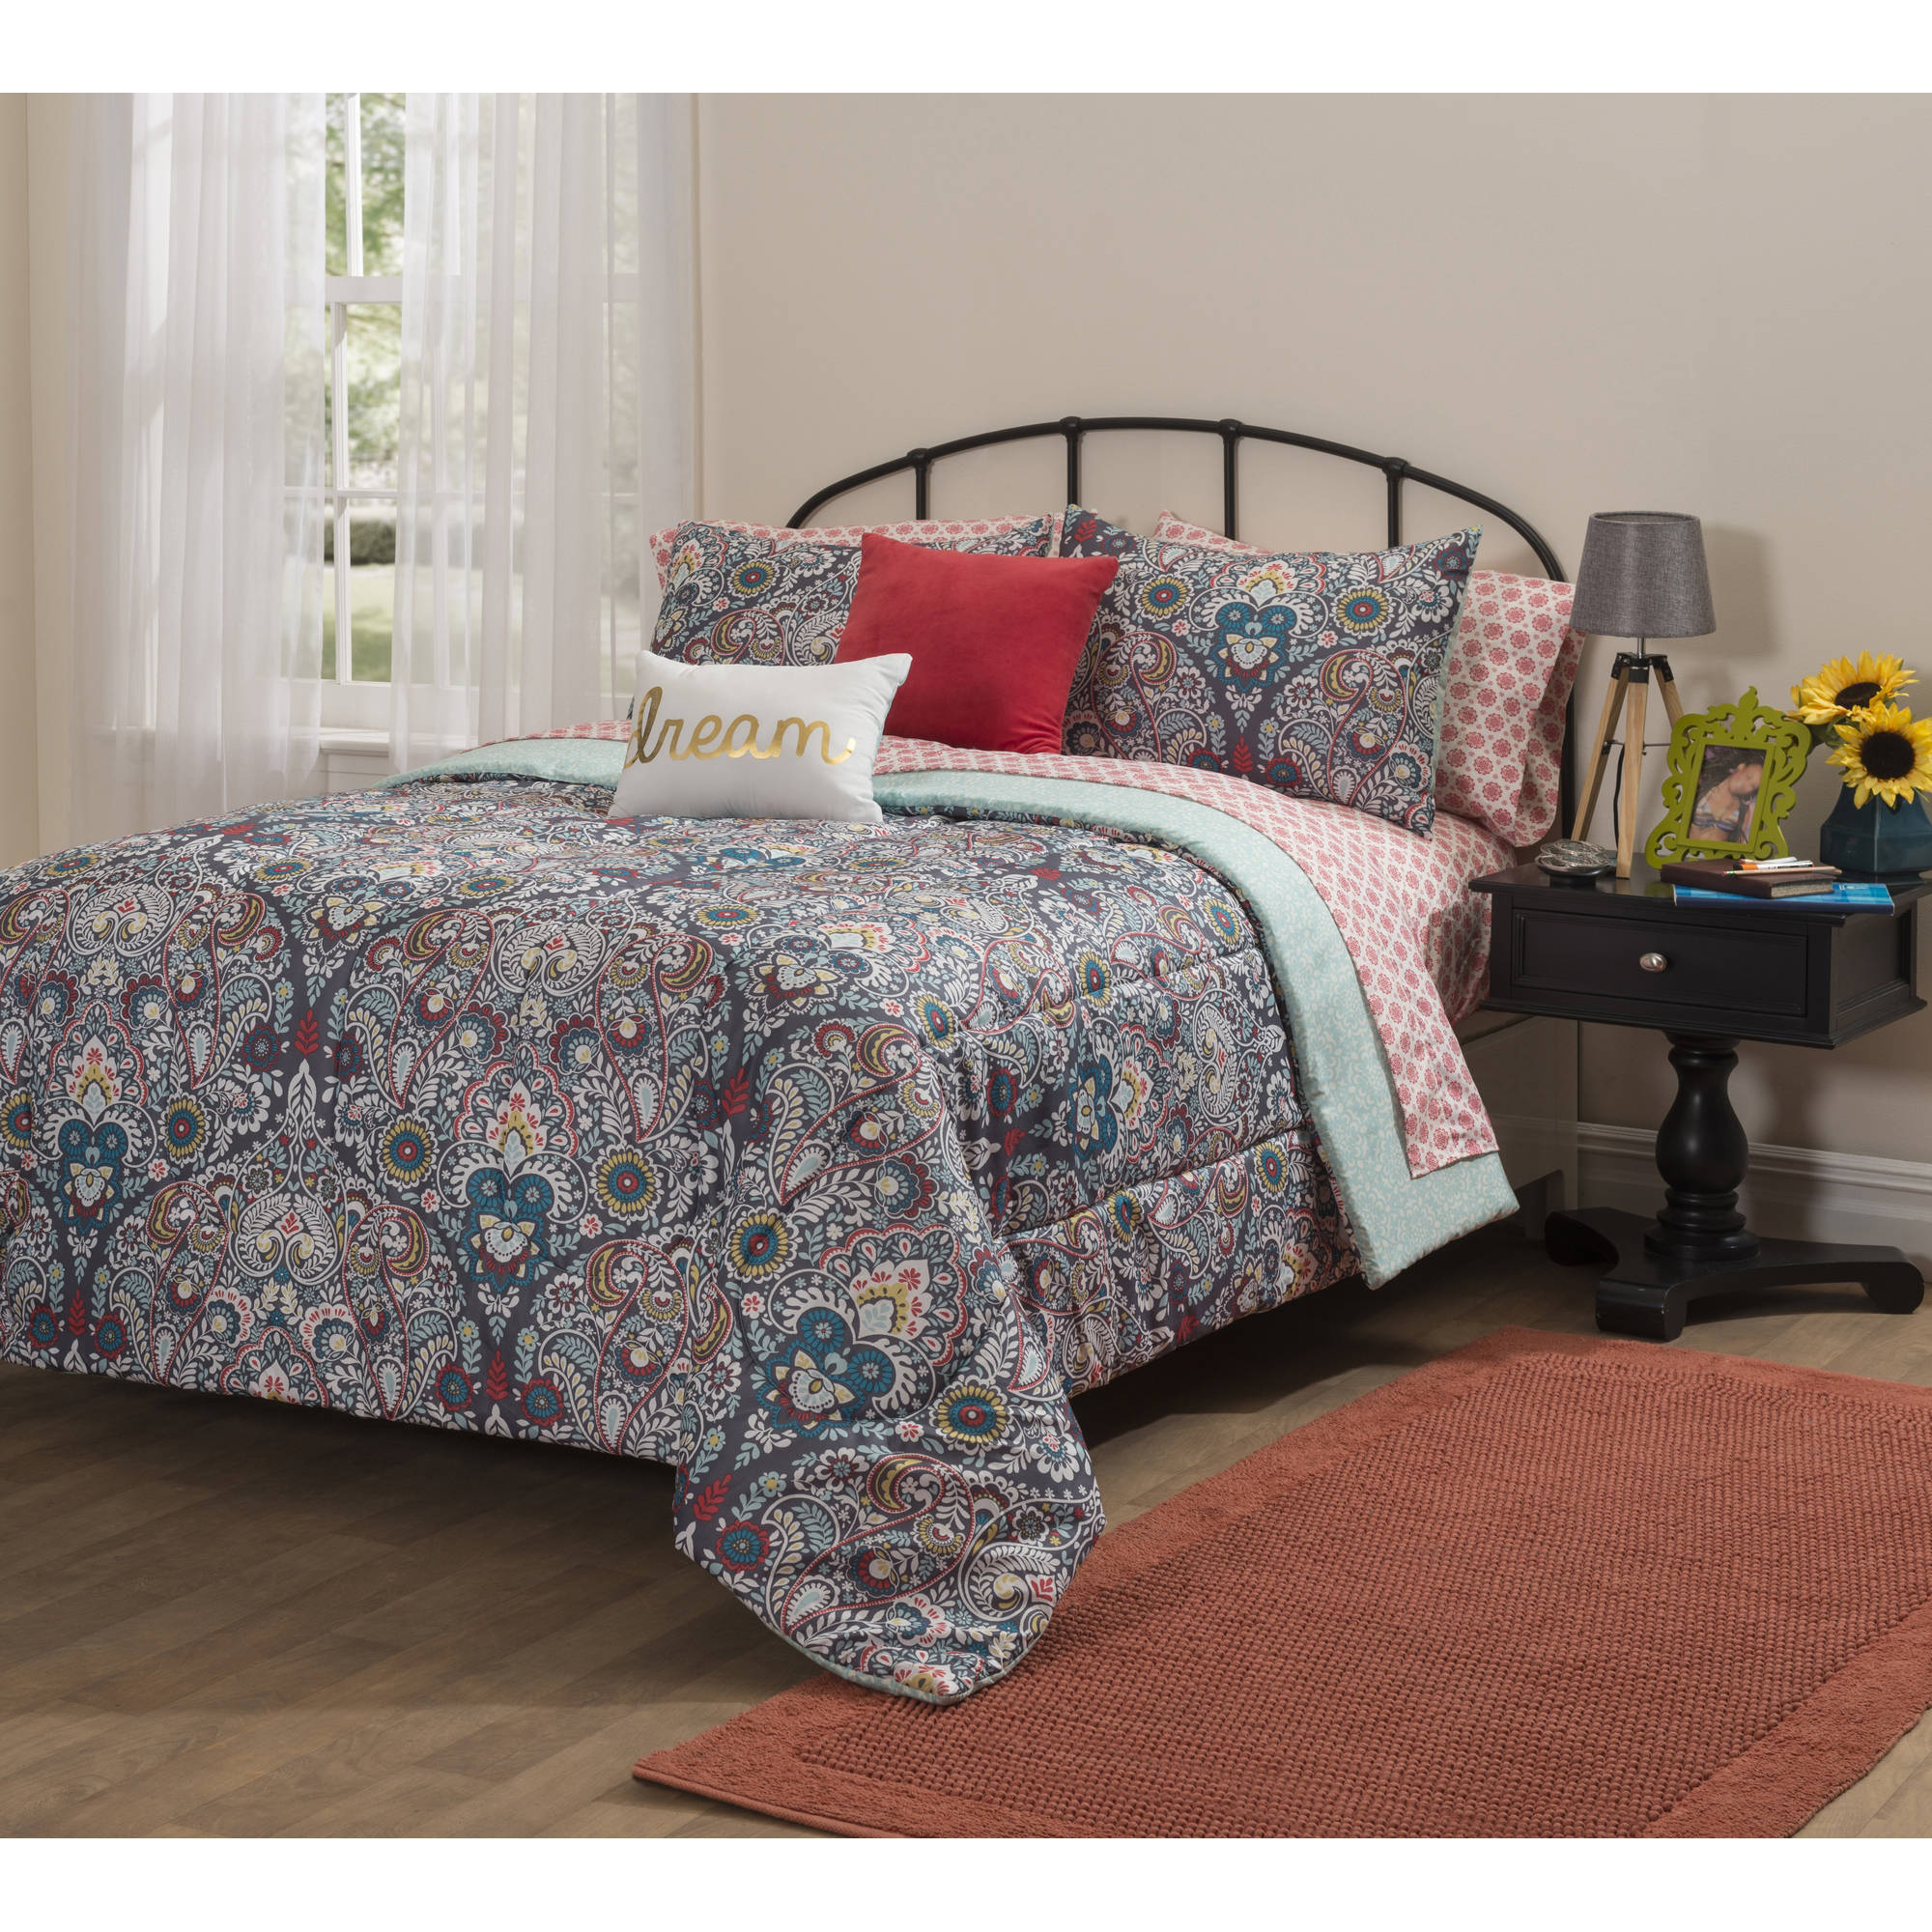 Formula Camelia Damask Bed in a Bag Bedding Set